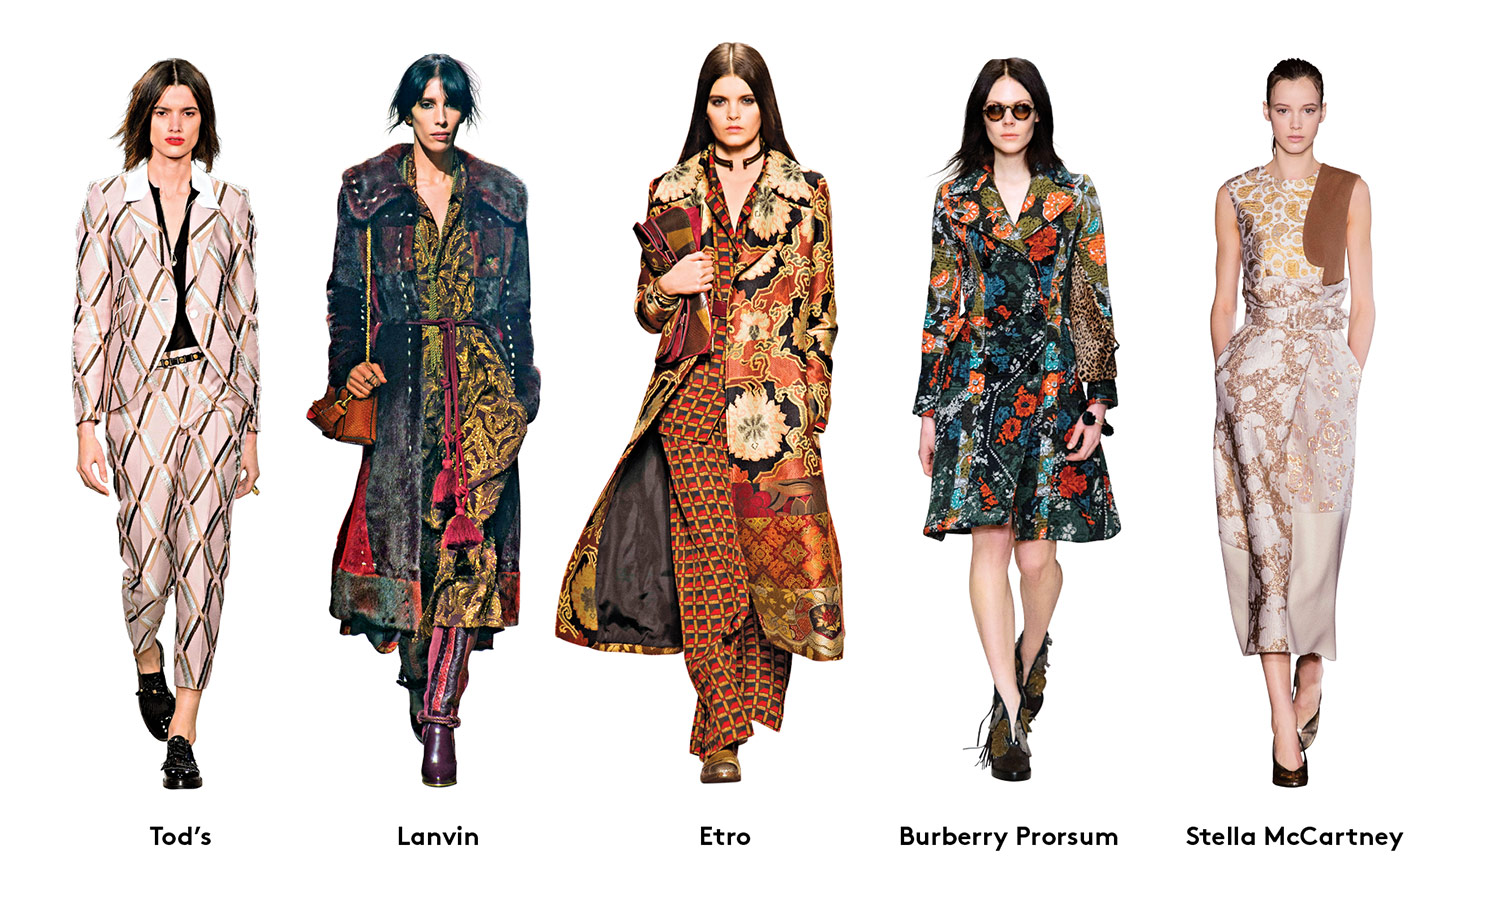 Fashion trends for fall - Fashion And Interior Design Have Always Cross Pollinated This Season Stella Mccartney S Paisley Brocades Are A Dead Ringer For Calico Wallpaper S Aurora